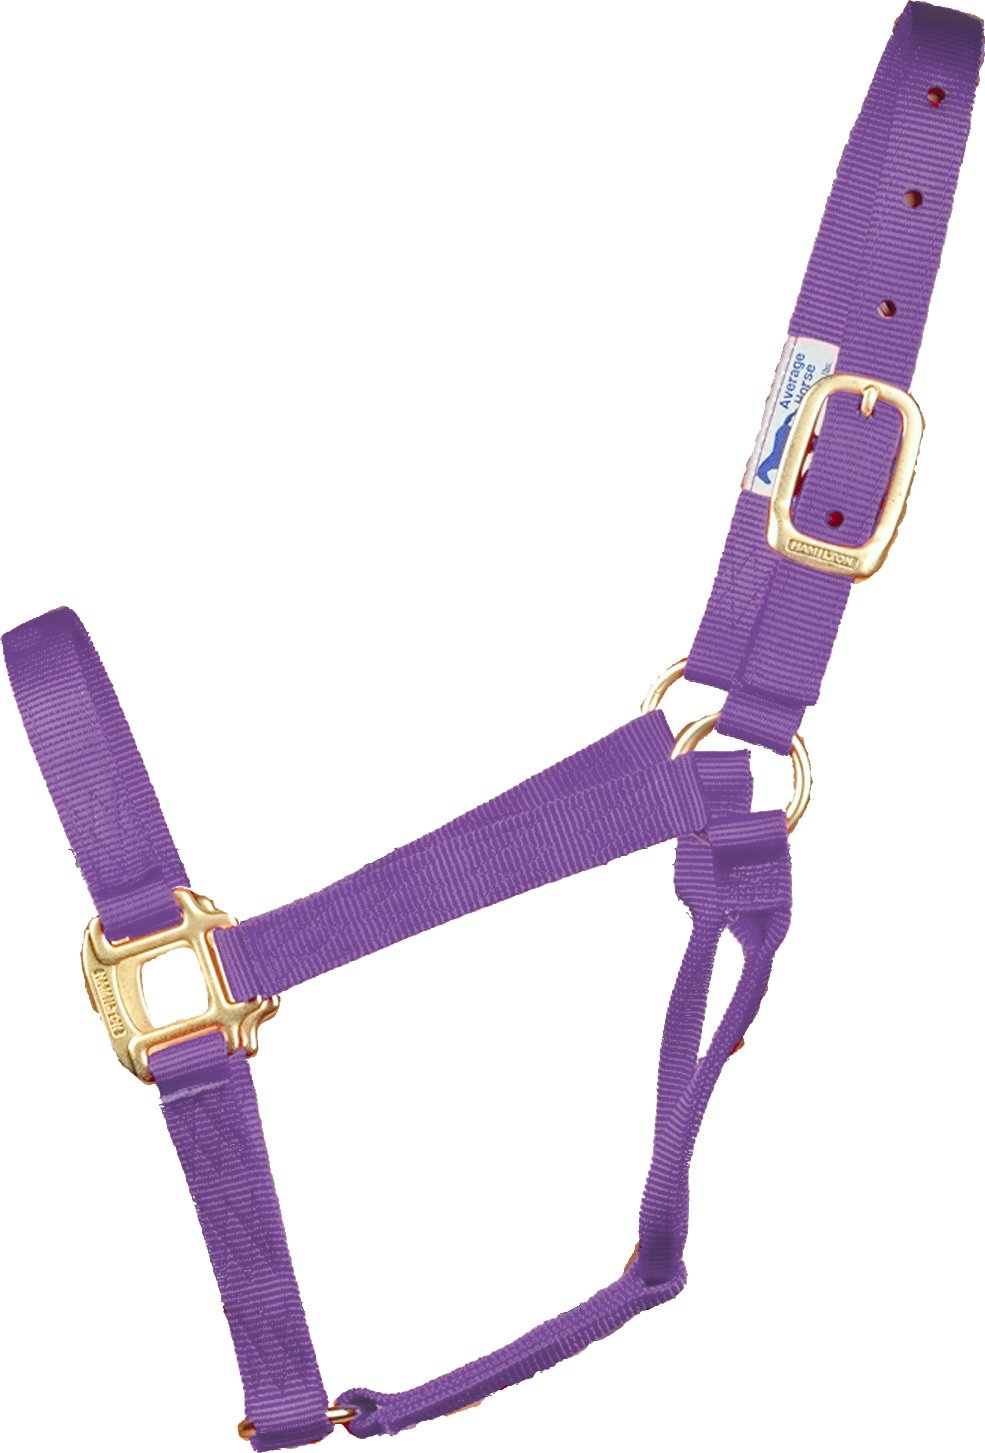 Hamilton 1-Inch Nylon Quality Halter for 300 to 500-Pound Horse, Yearling, Lavender